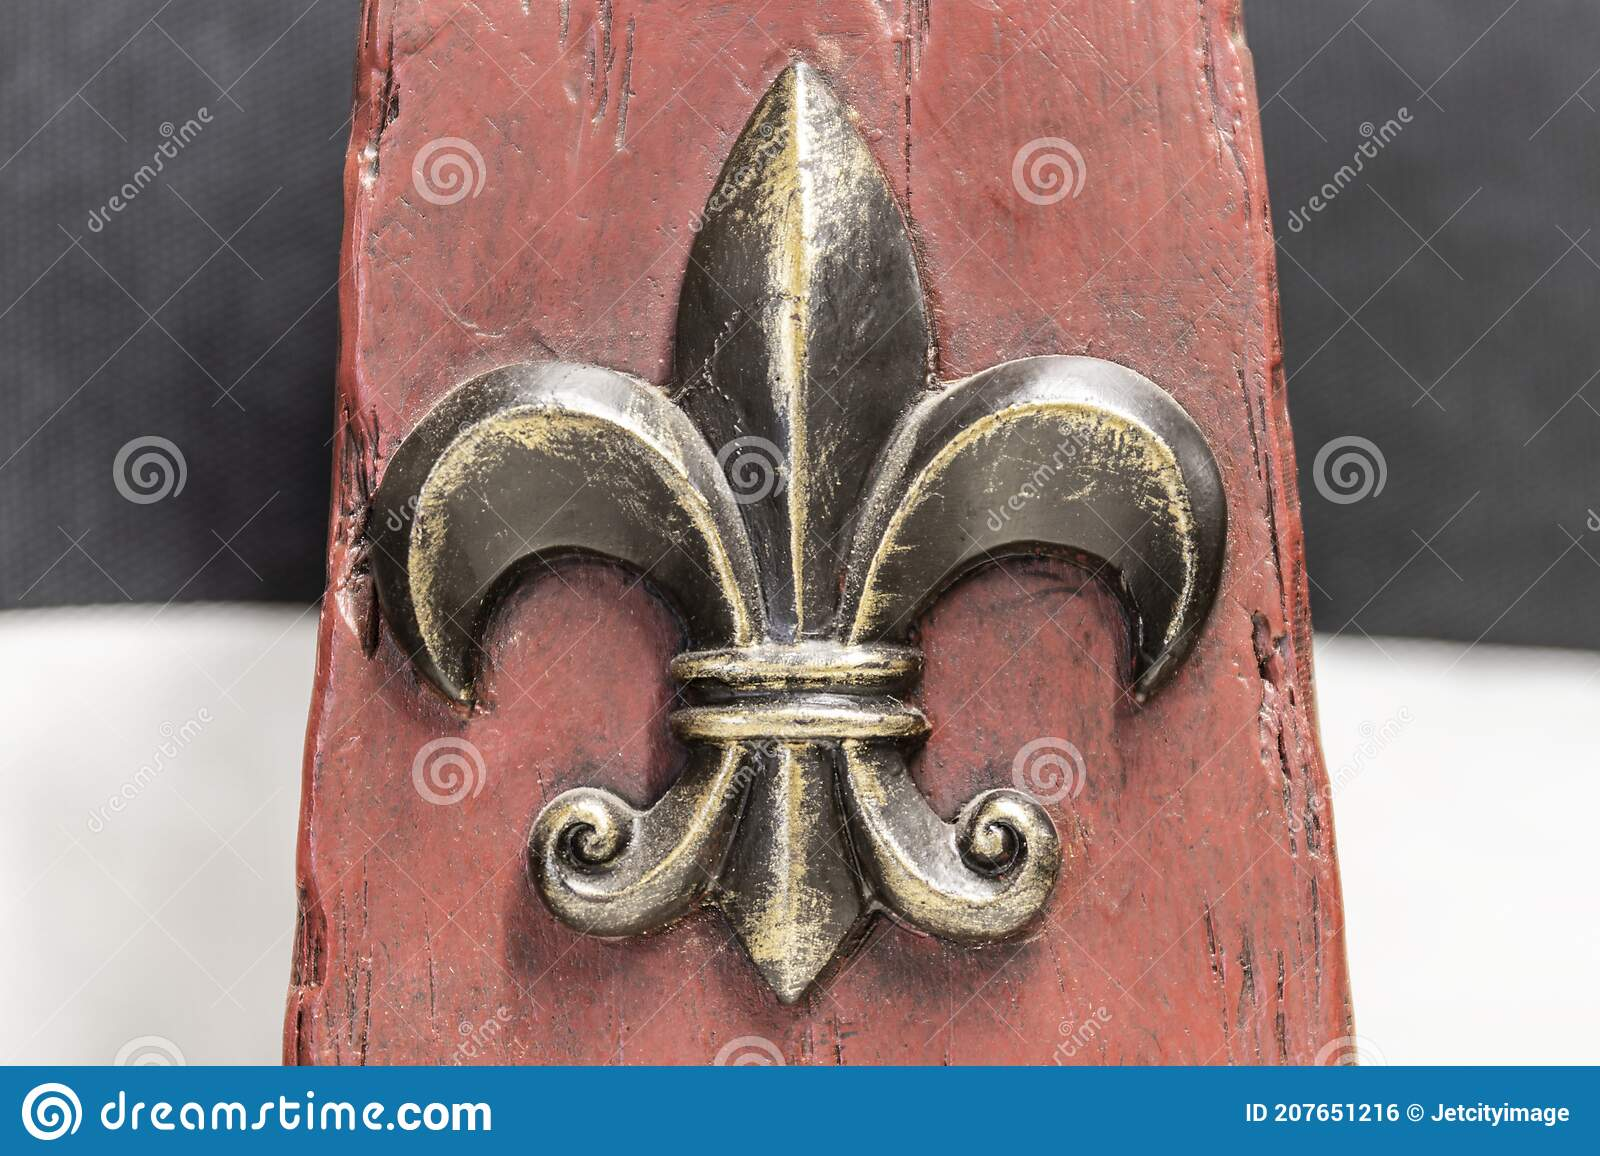 8x12 FT Fleur De Lis Vinyl Photography Background Backdrops,Royal Legend Lily Throne France Empire Family Insignia of Knights Image Background for Selfie Birthday Party Pictures Photo Booth Shoot